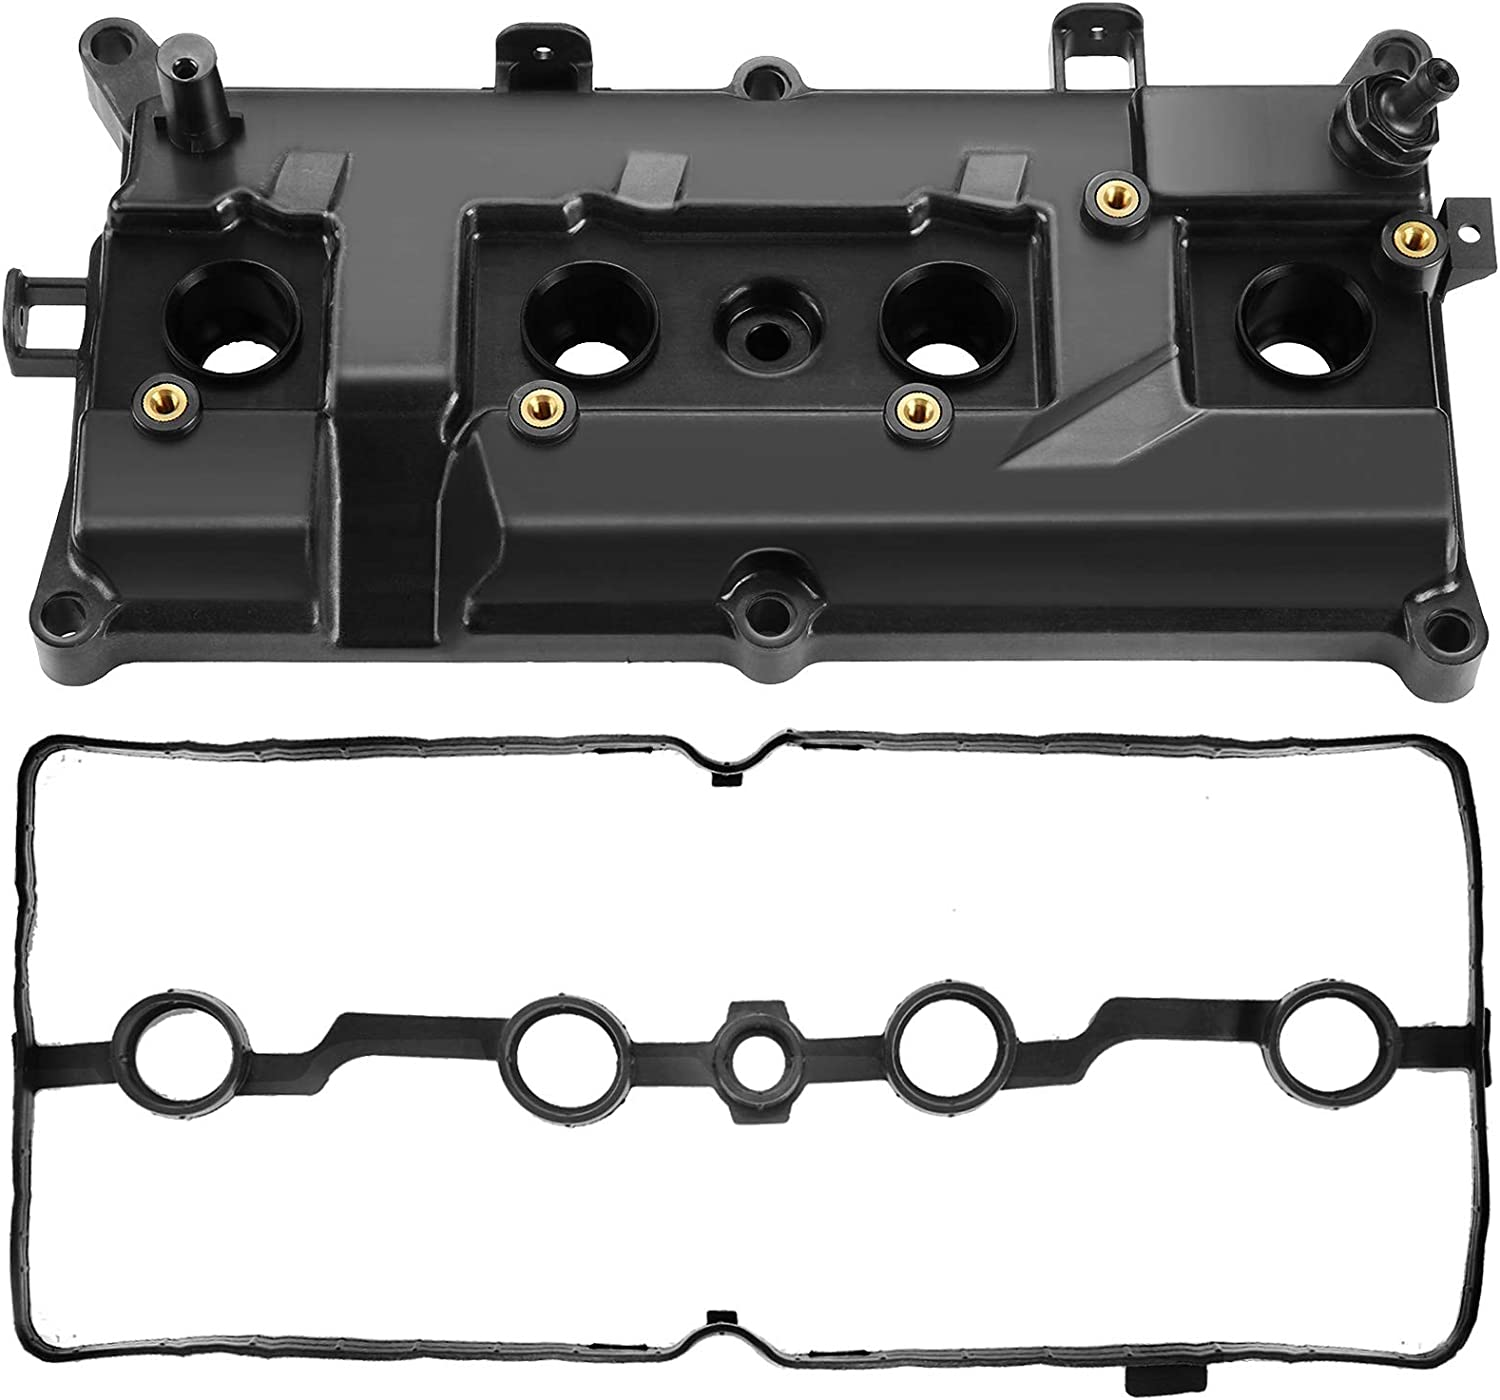 A-Premium Engine Max Sale price 62% OFF Valve Cover Compatible with Gasket Nissan